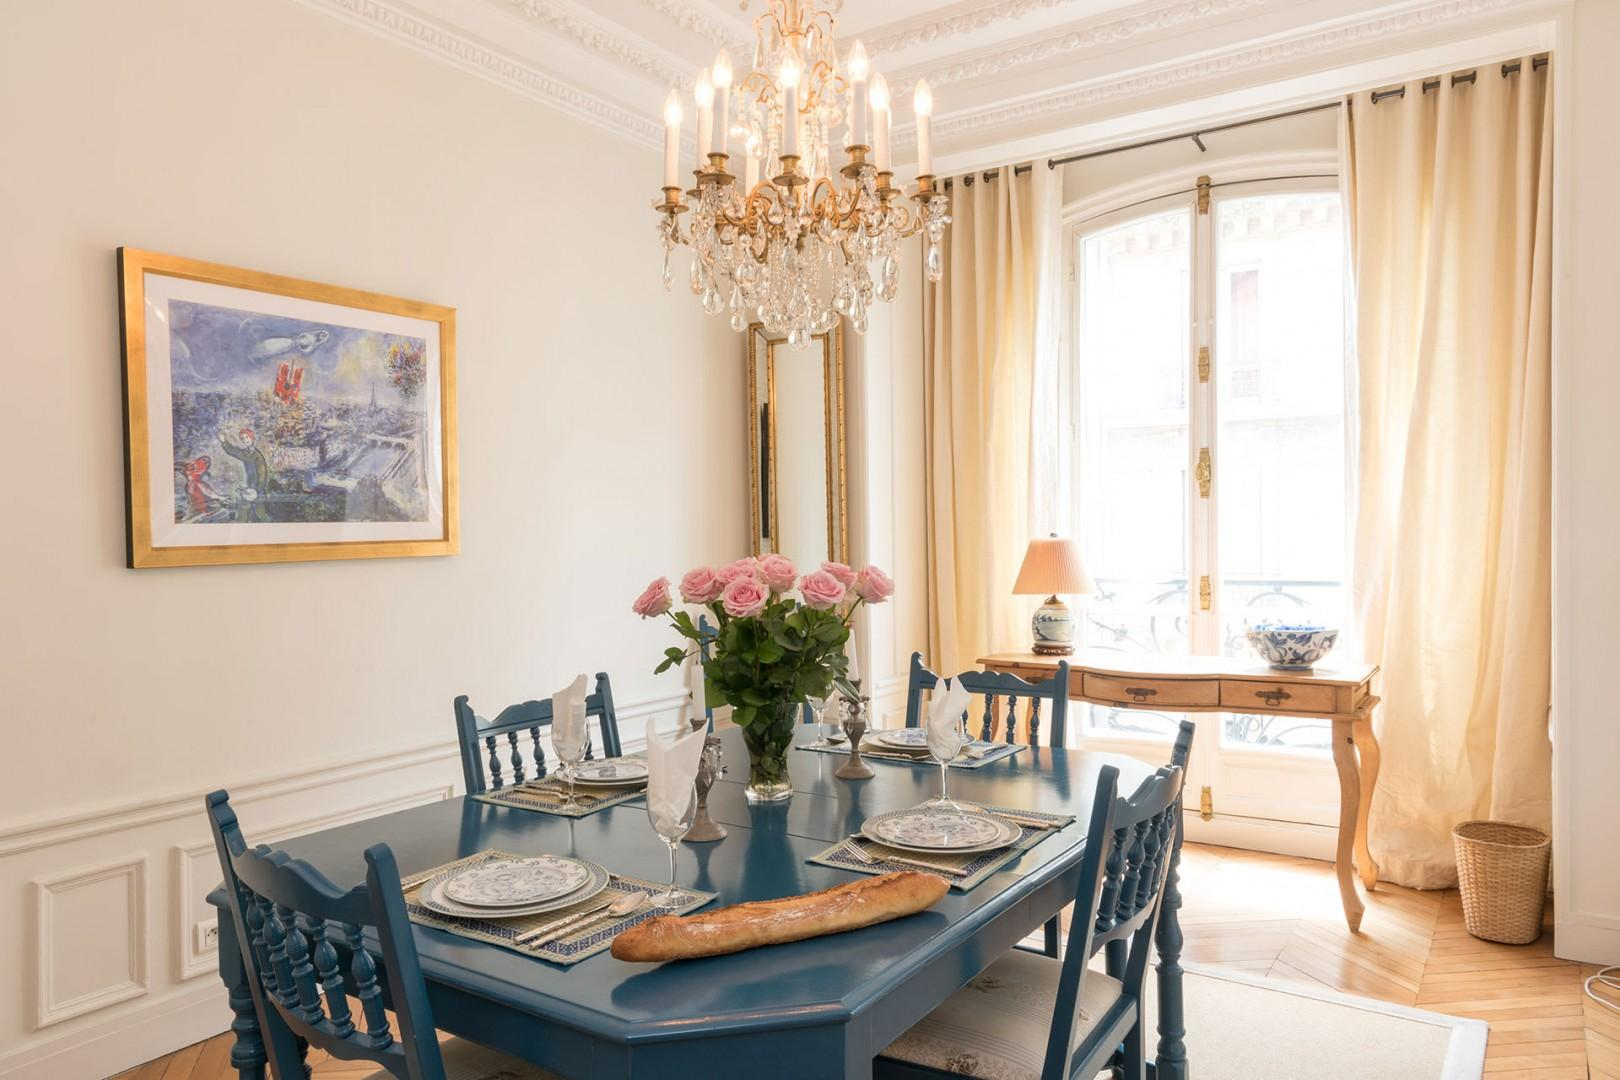 The country-style dining table comfortably seats six guests.